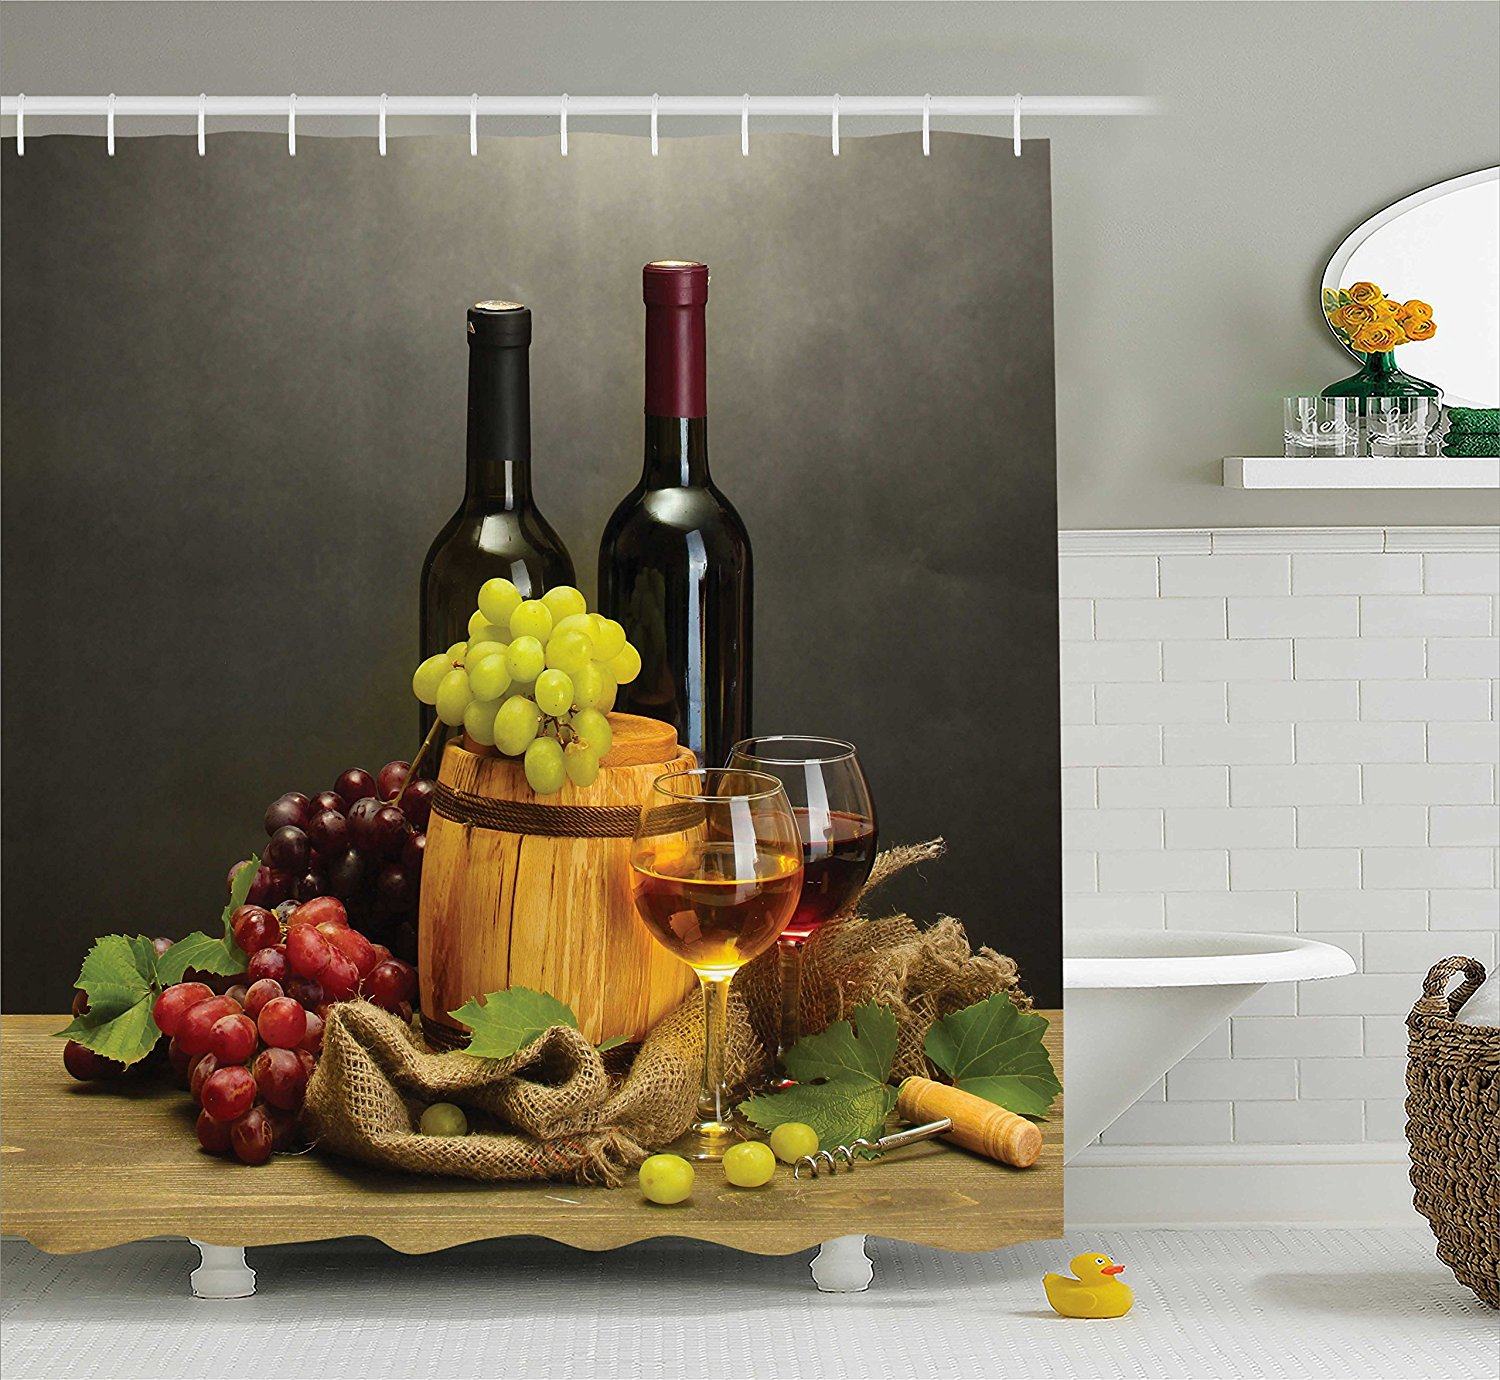 Winery Decor Shower Curtain by , Barrel, Bottles and Glas...